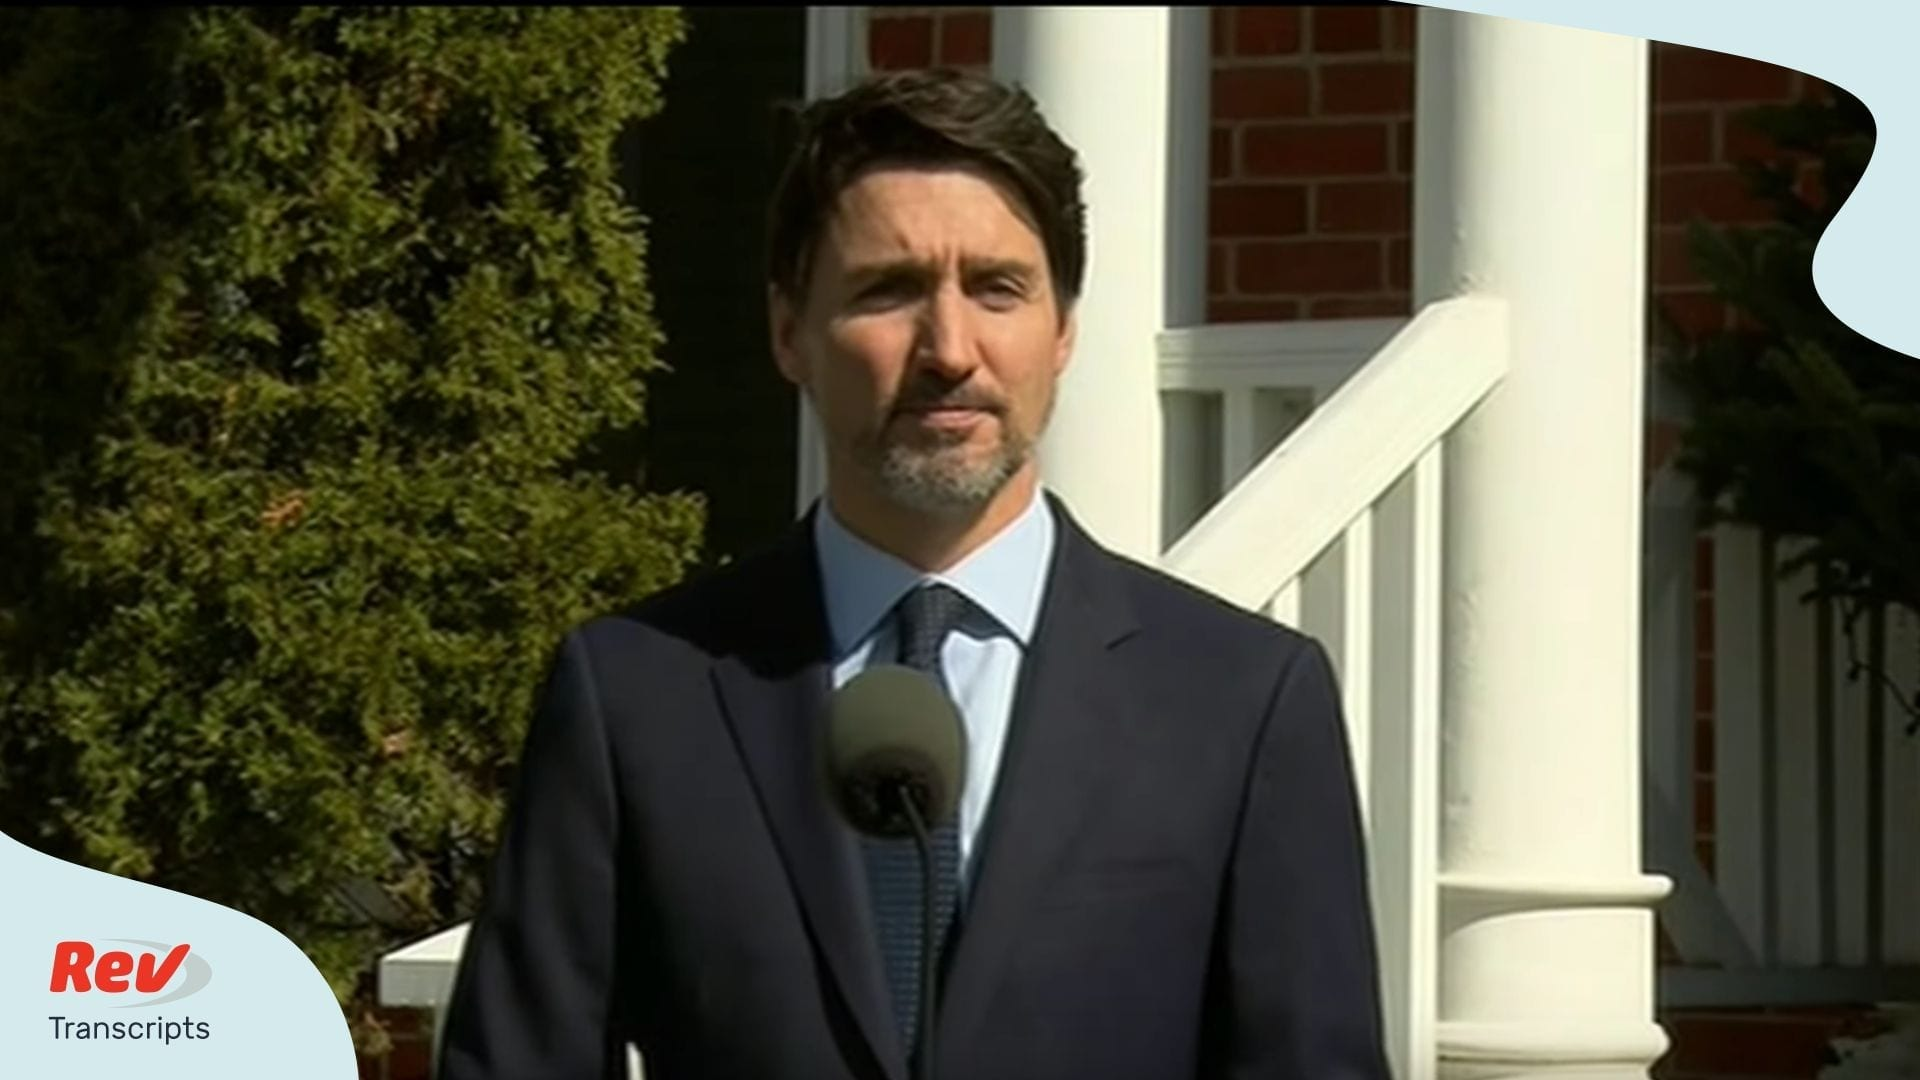 Justin Trudeau Speech Transcript on Wife Getting COVID-19